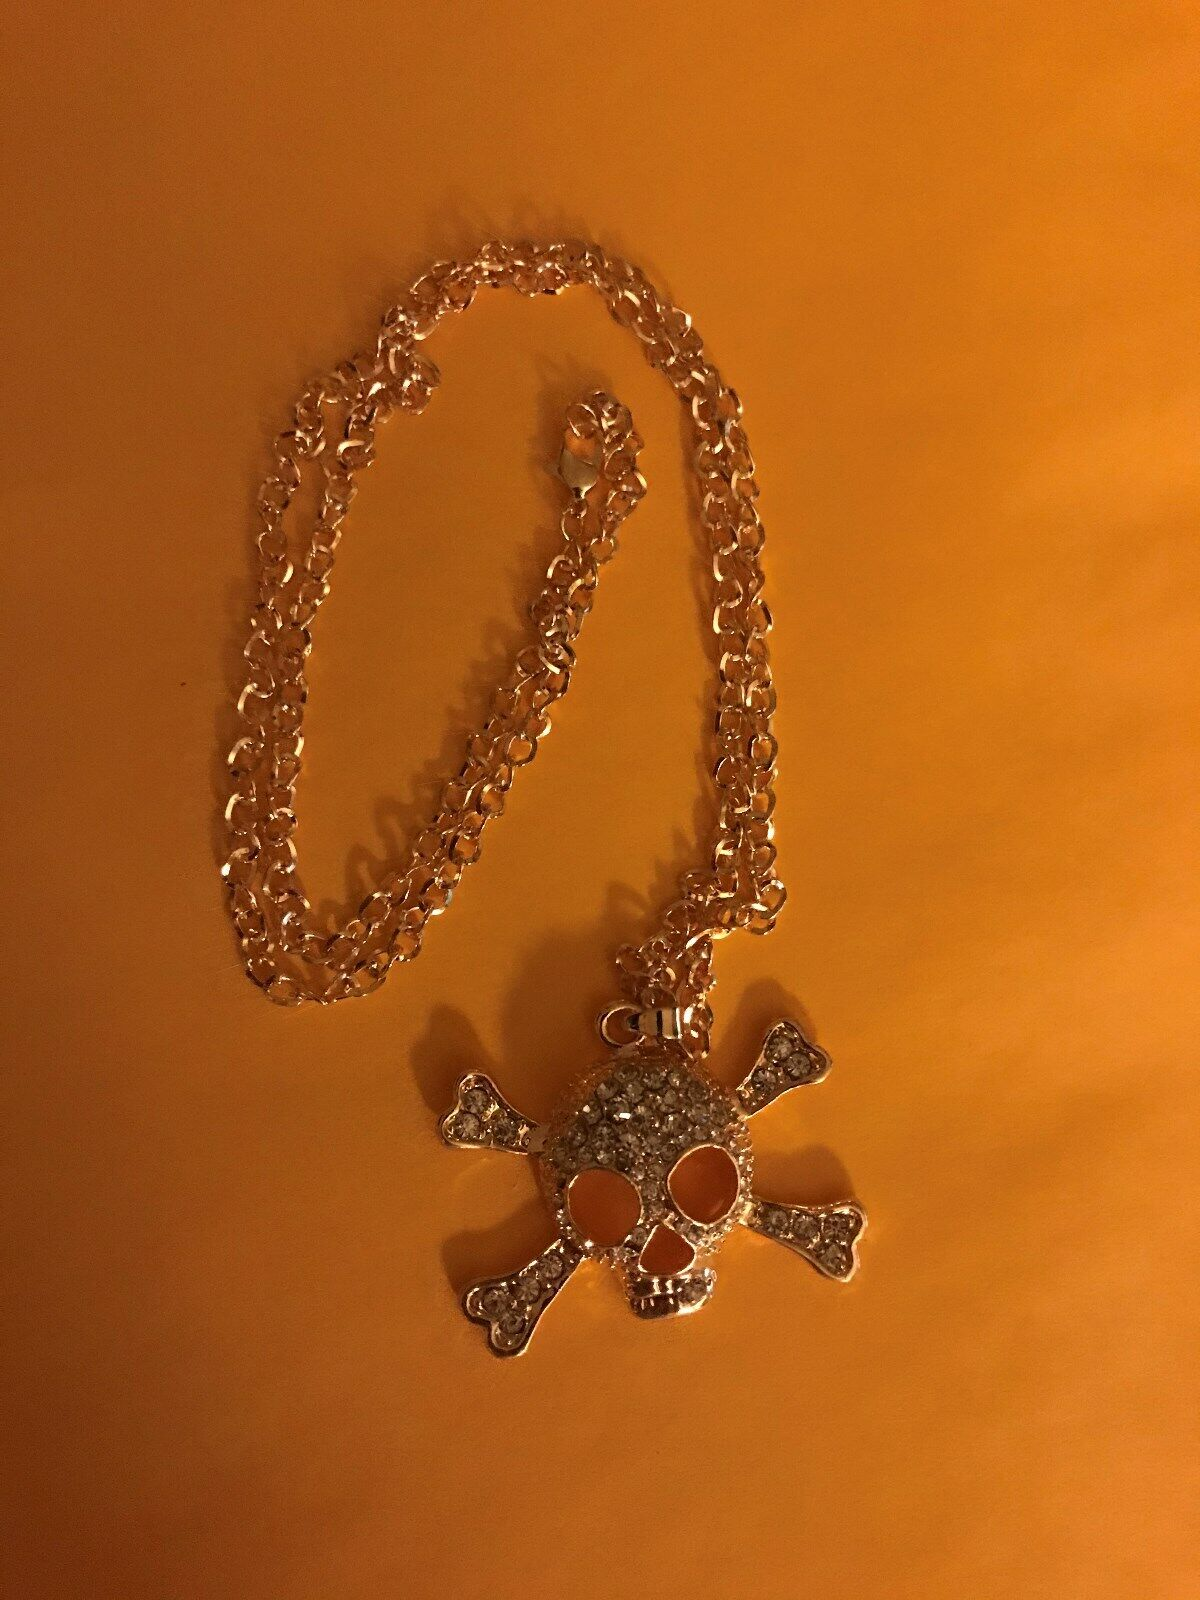 PIRATE SKULL AND CROSS BONES WITH WHITE STONES HUGE BLING NECKLACE - BRAND NEW - $20.00